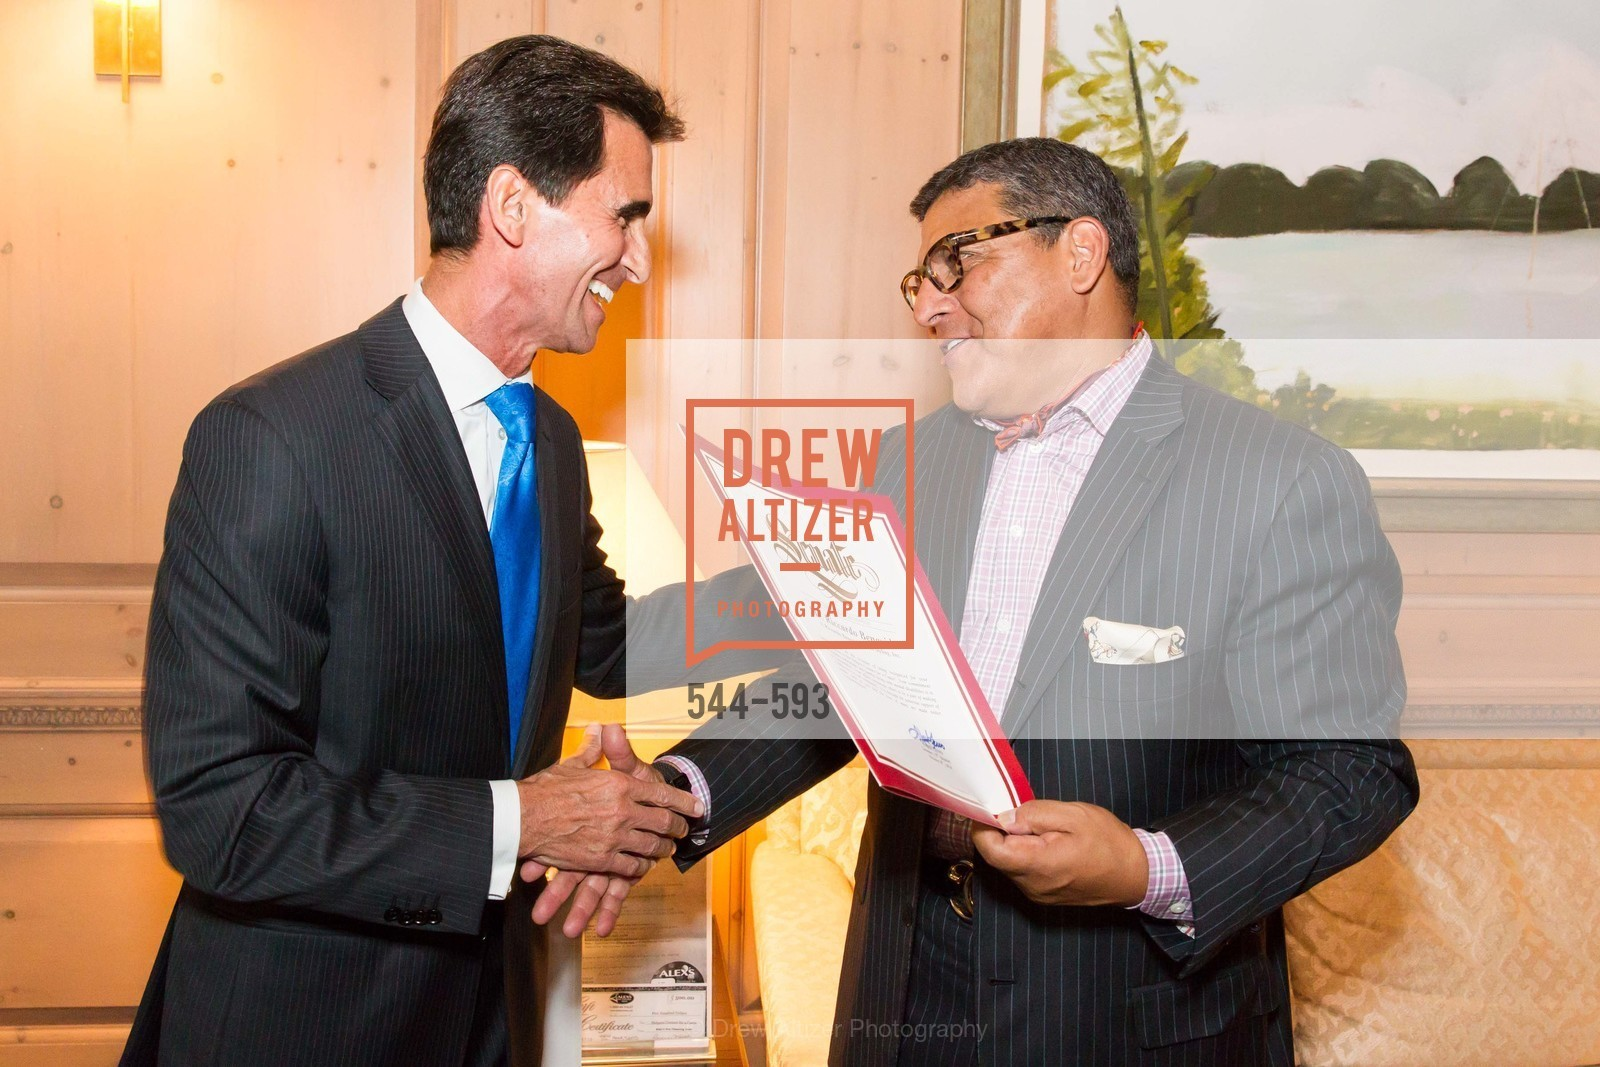 Mark Leno, Riccardo Benavides, COUTURE FOR A CAUSE, US, October 5th, 2014,Drew Altizer, Drew Altizer Photography, full-service event agency, private events, San Francisco photographer, photographer California